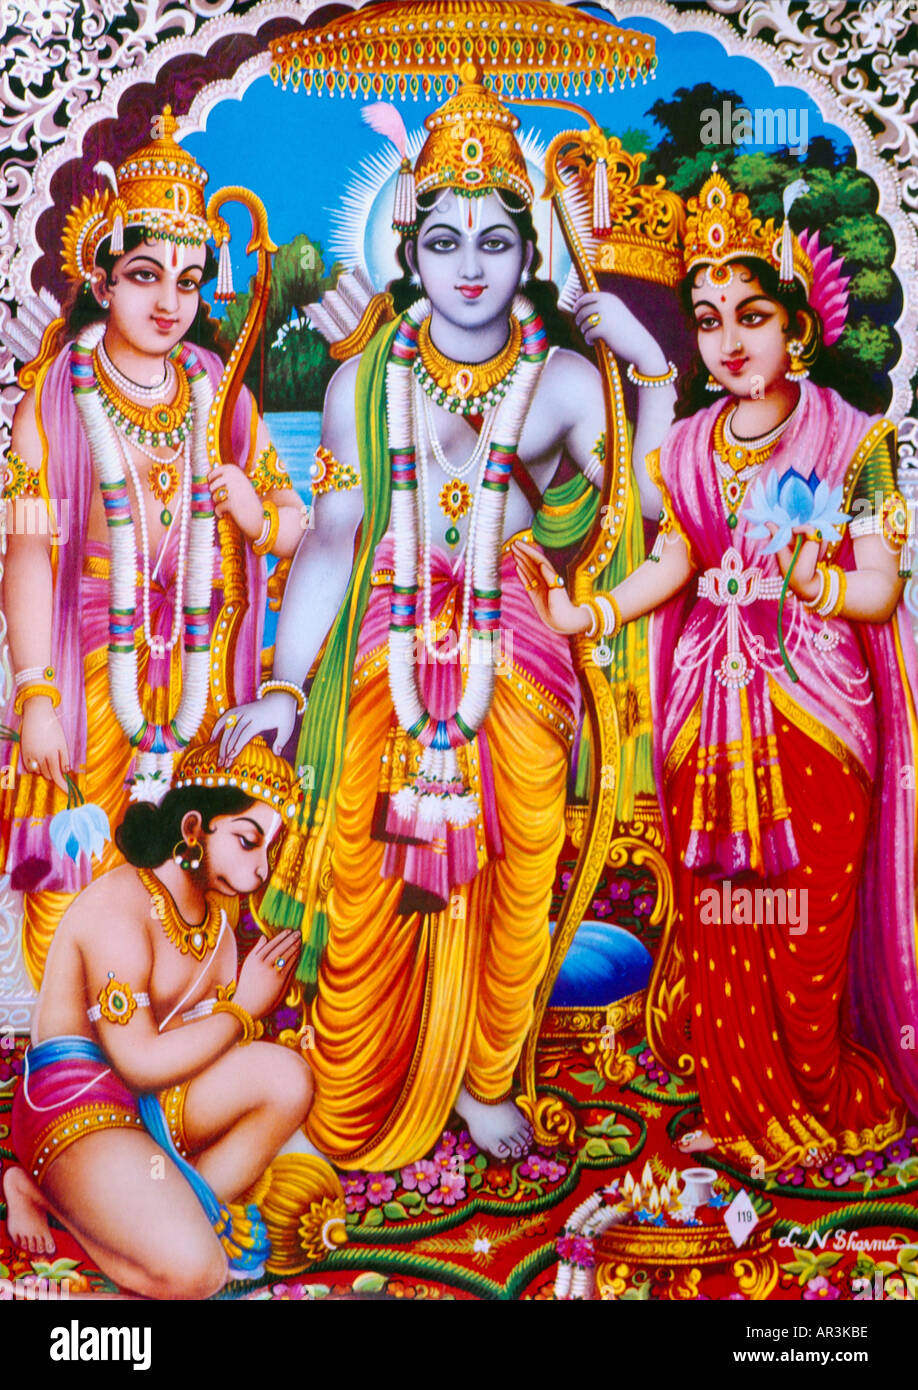 What is the age difference of ram and Sita? - rapidpressrelease.com